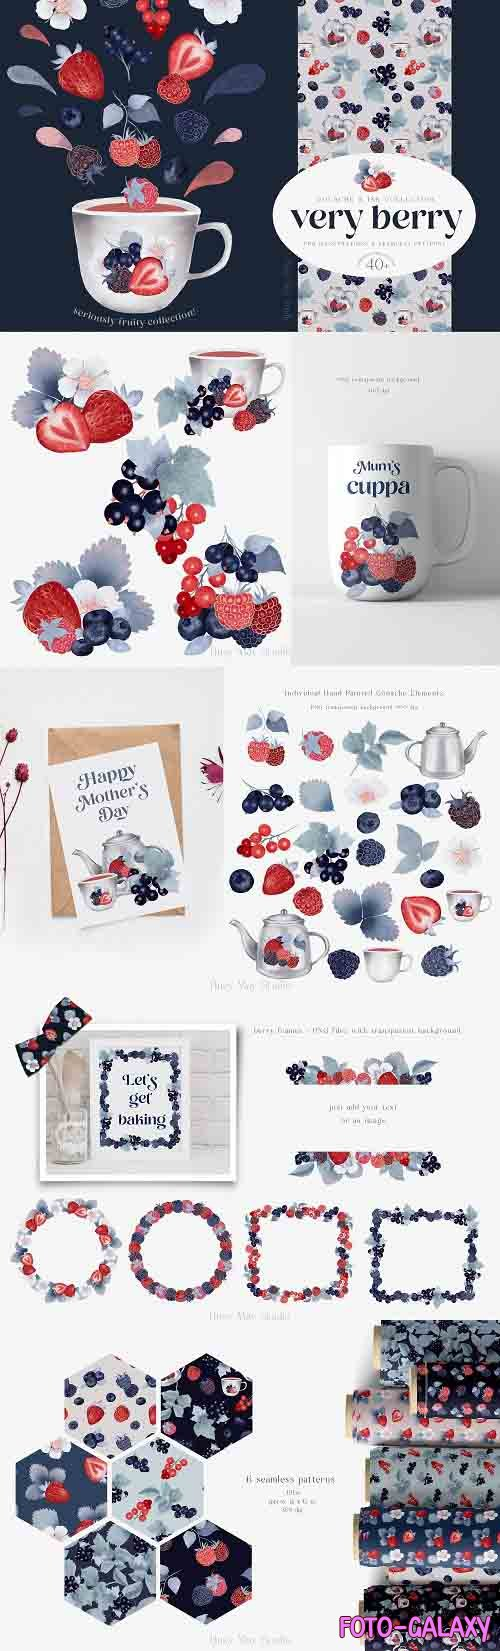 Gouache Berries Illustrations and Seamless Patterns PNG JPEG - 1360042